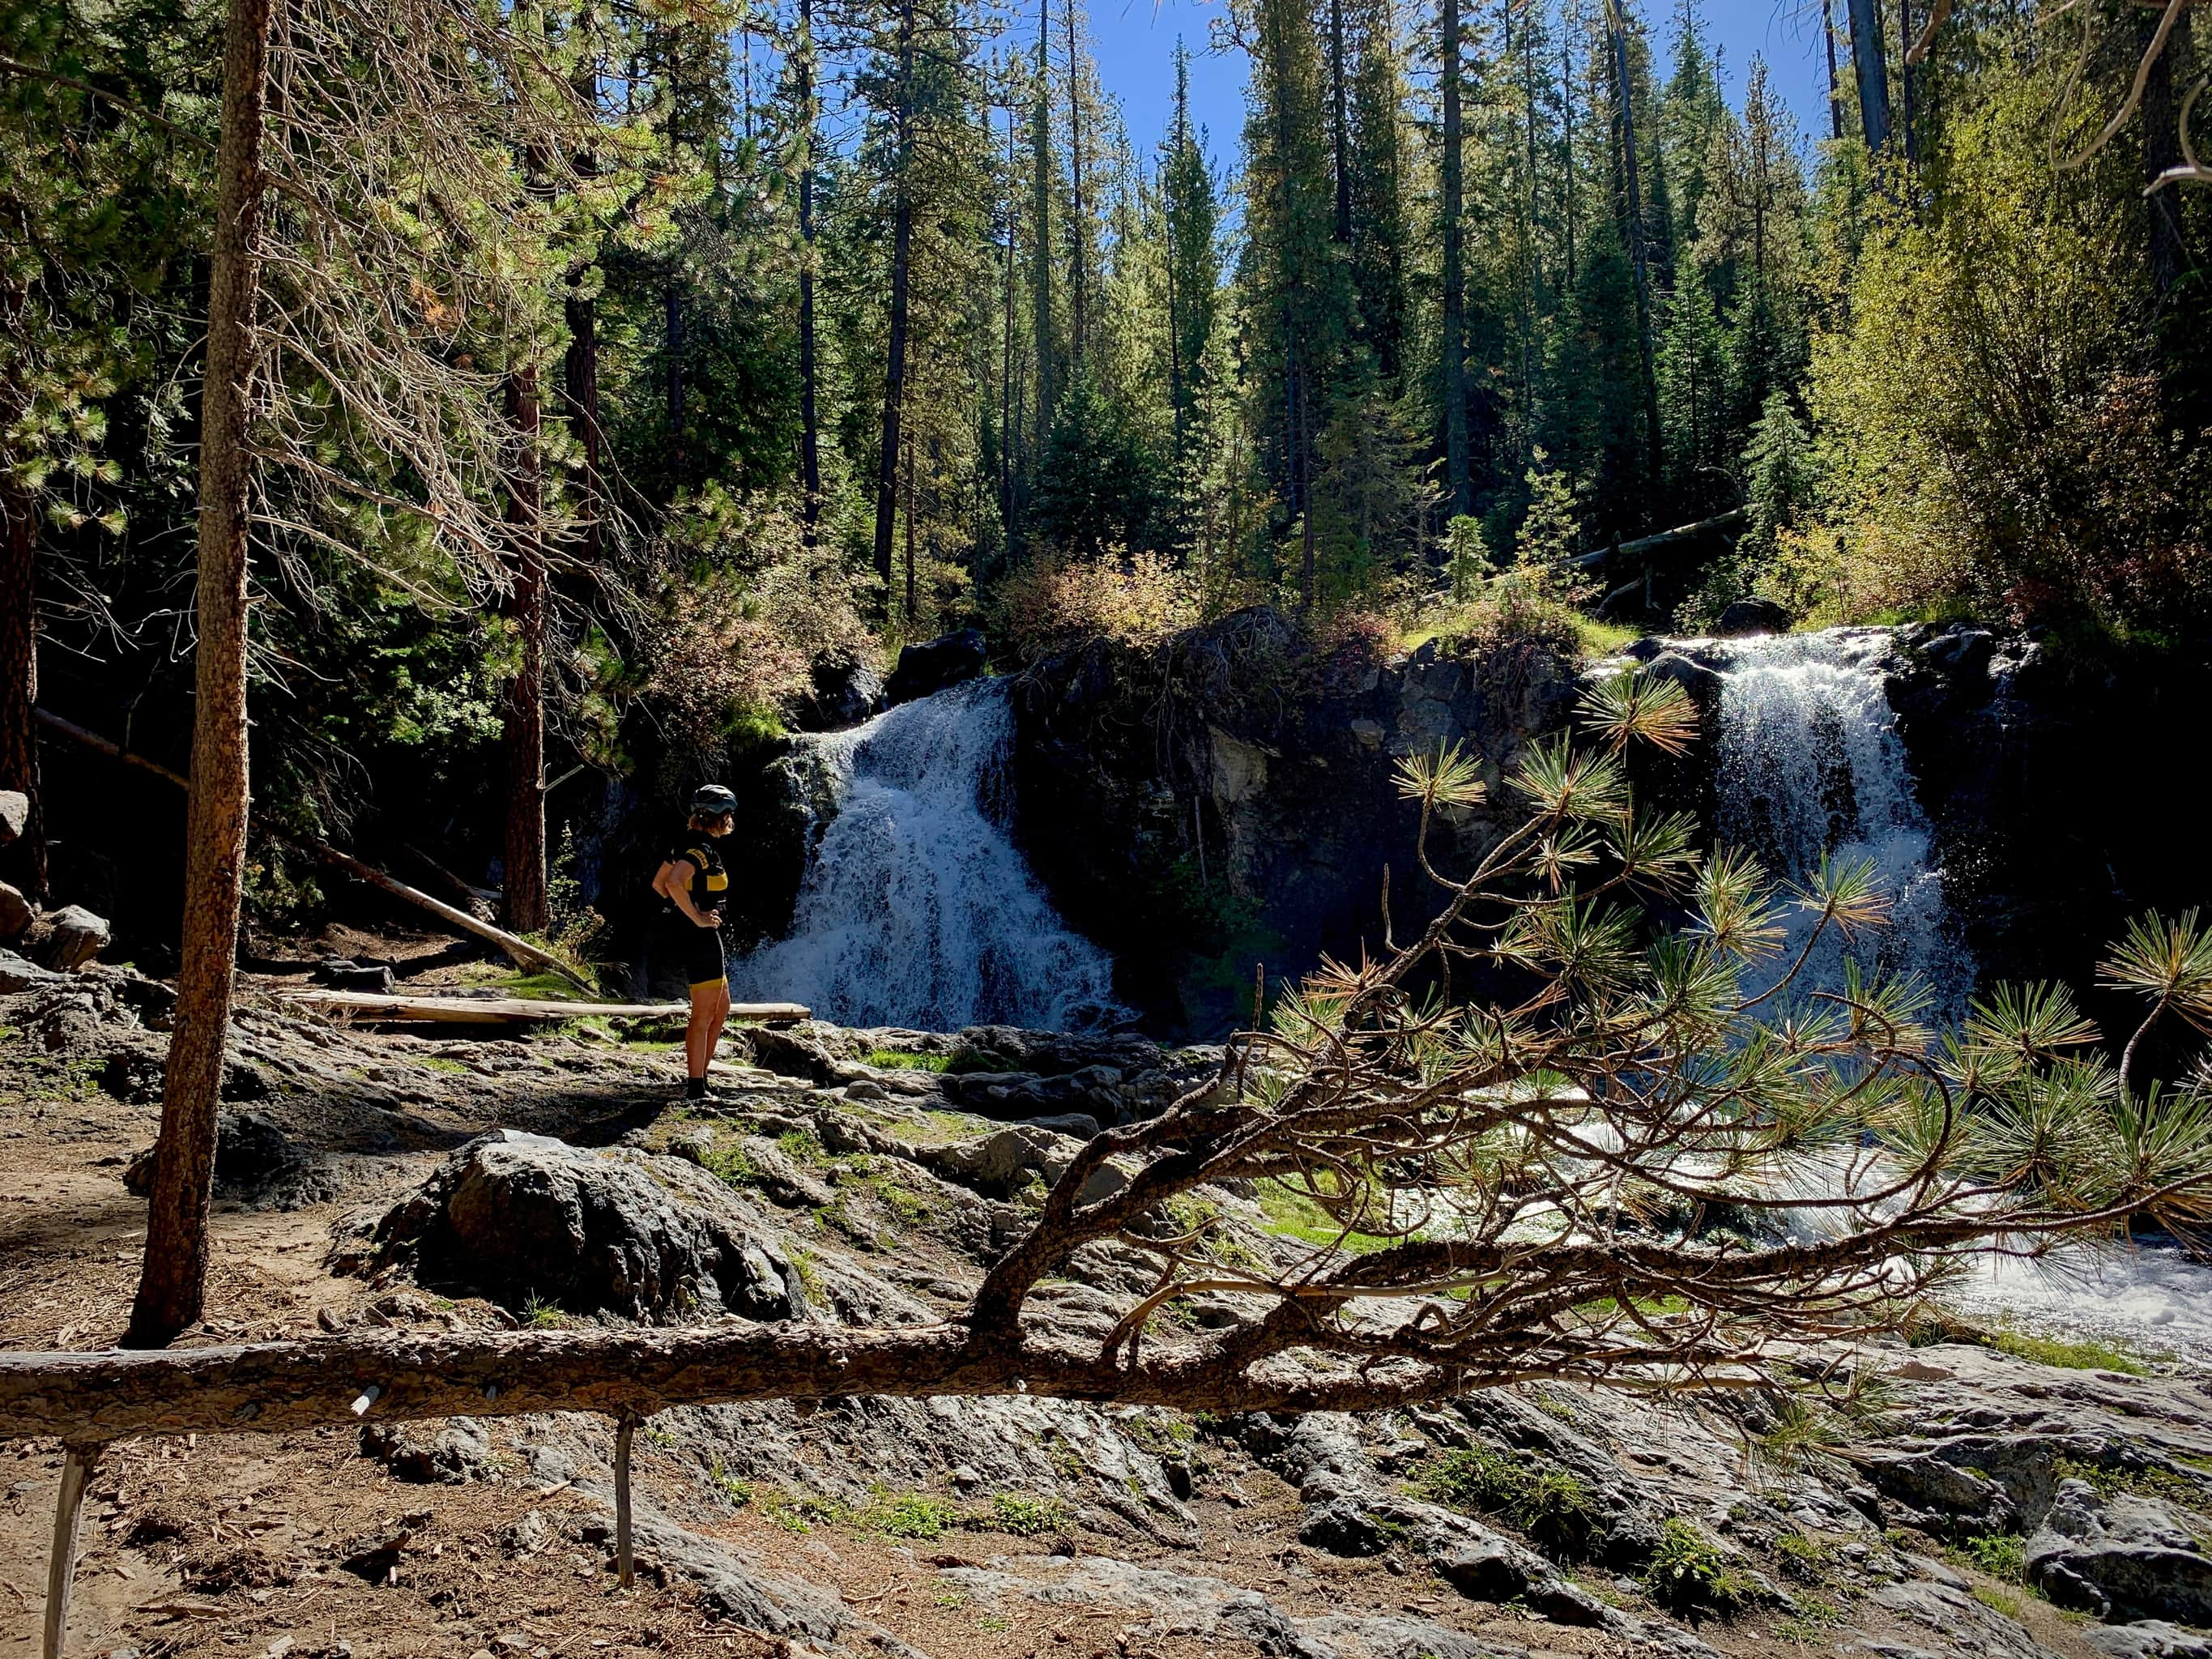 Cyclist standing next to split falls along Paulina creek in Newberry National Volcanic Monumnent.